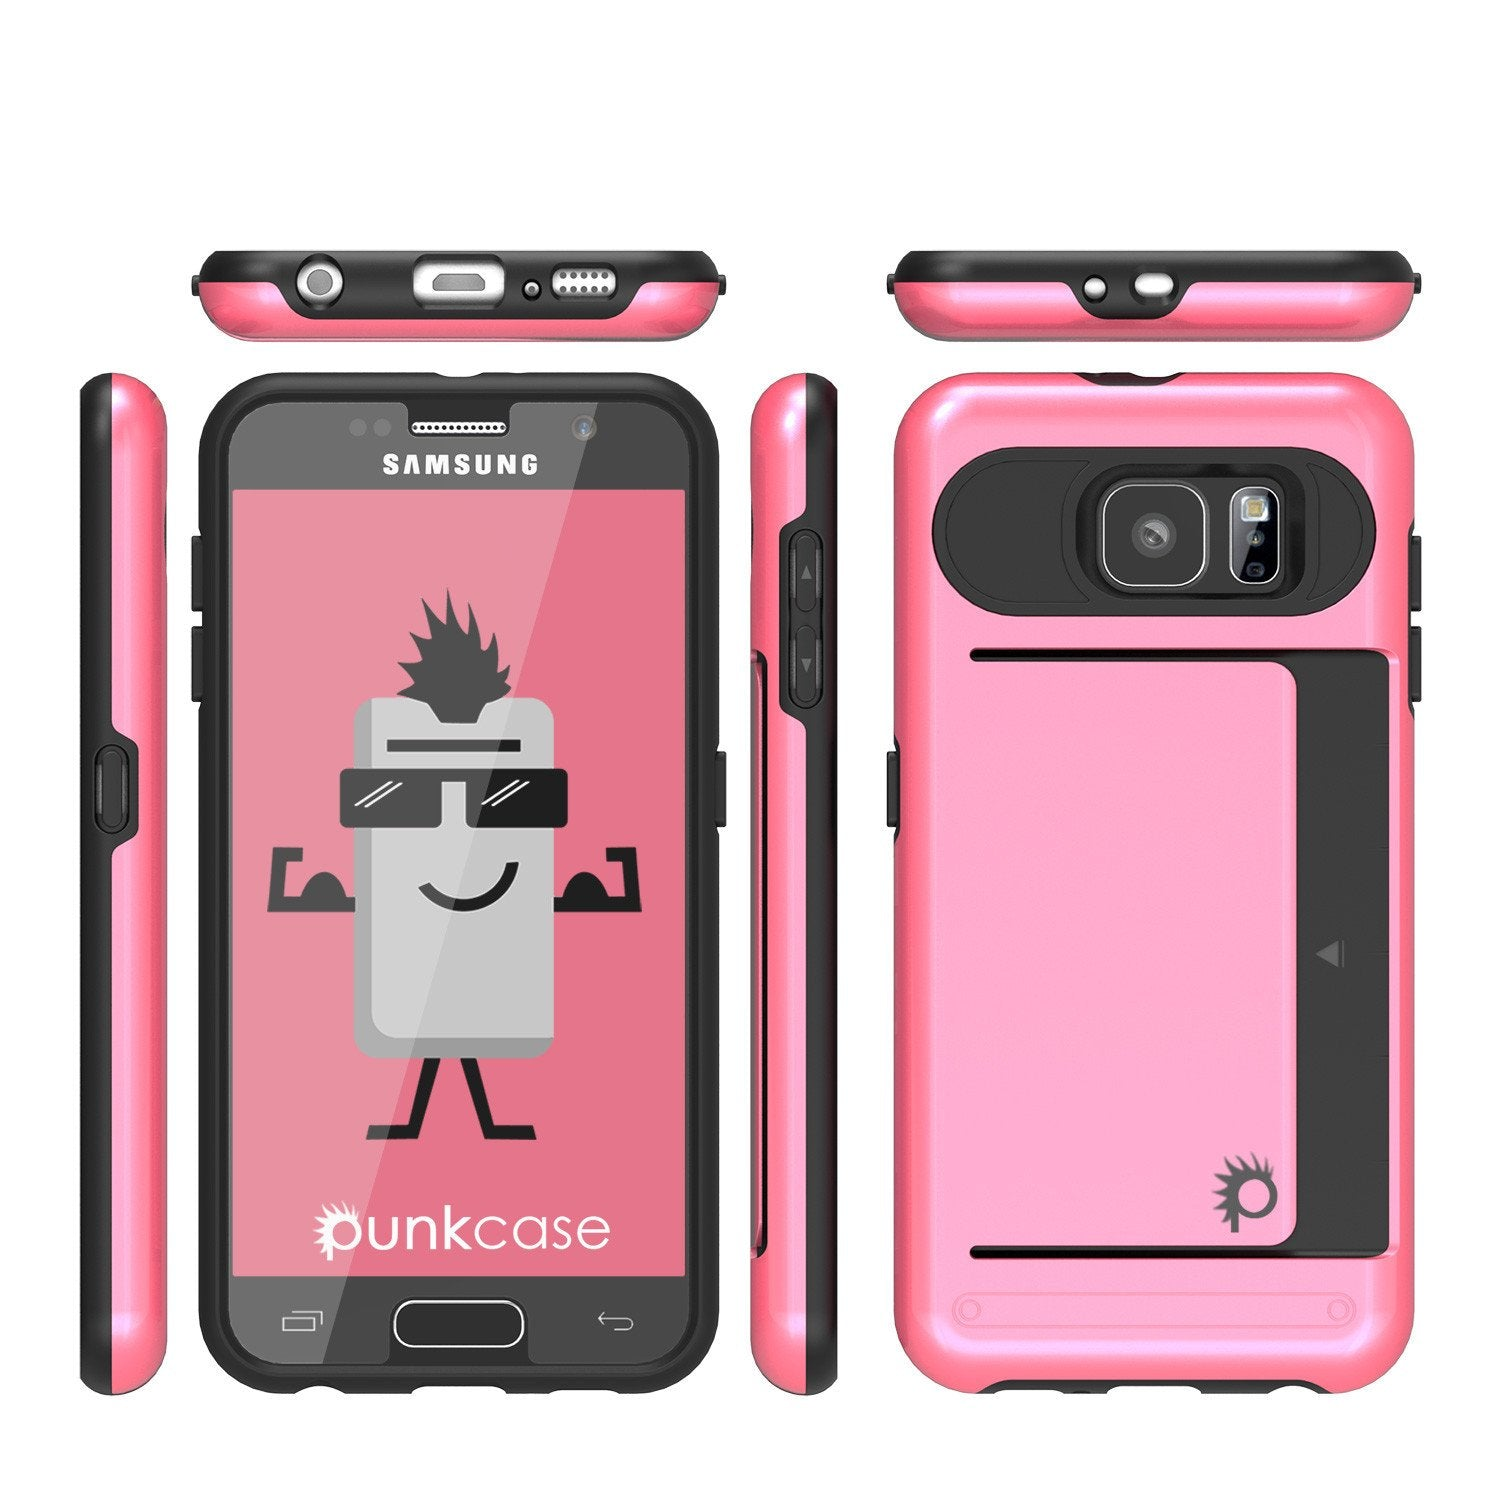 Galaxy S6 EDGE Case PunkCase CLUTCH Pink Series Slim Armor Soft Cover Case w/ Screen Protector - PunkCase NZ